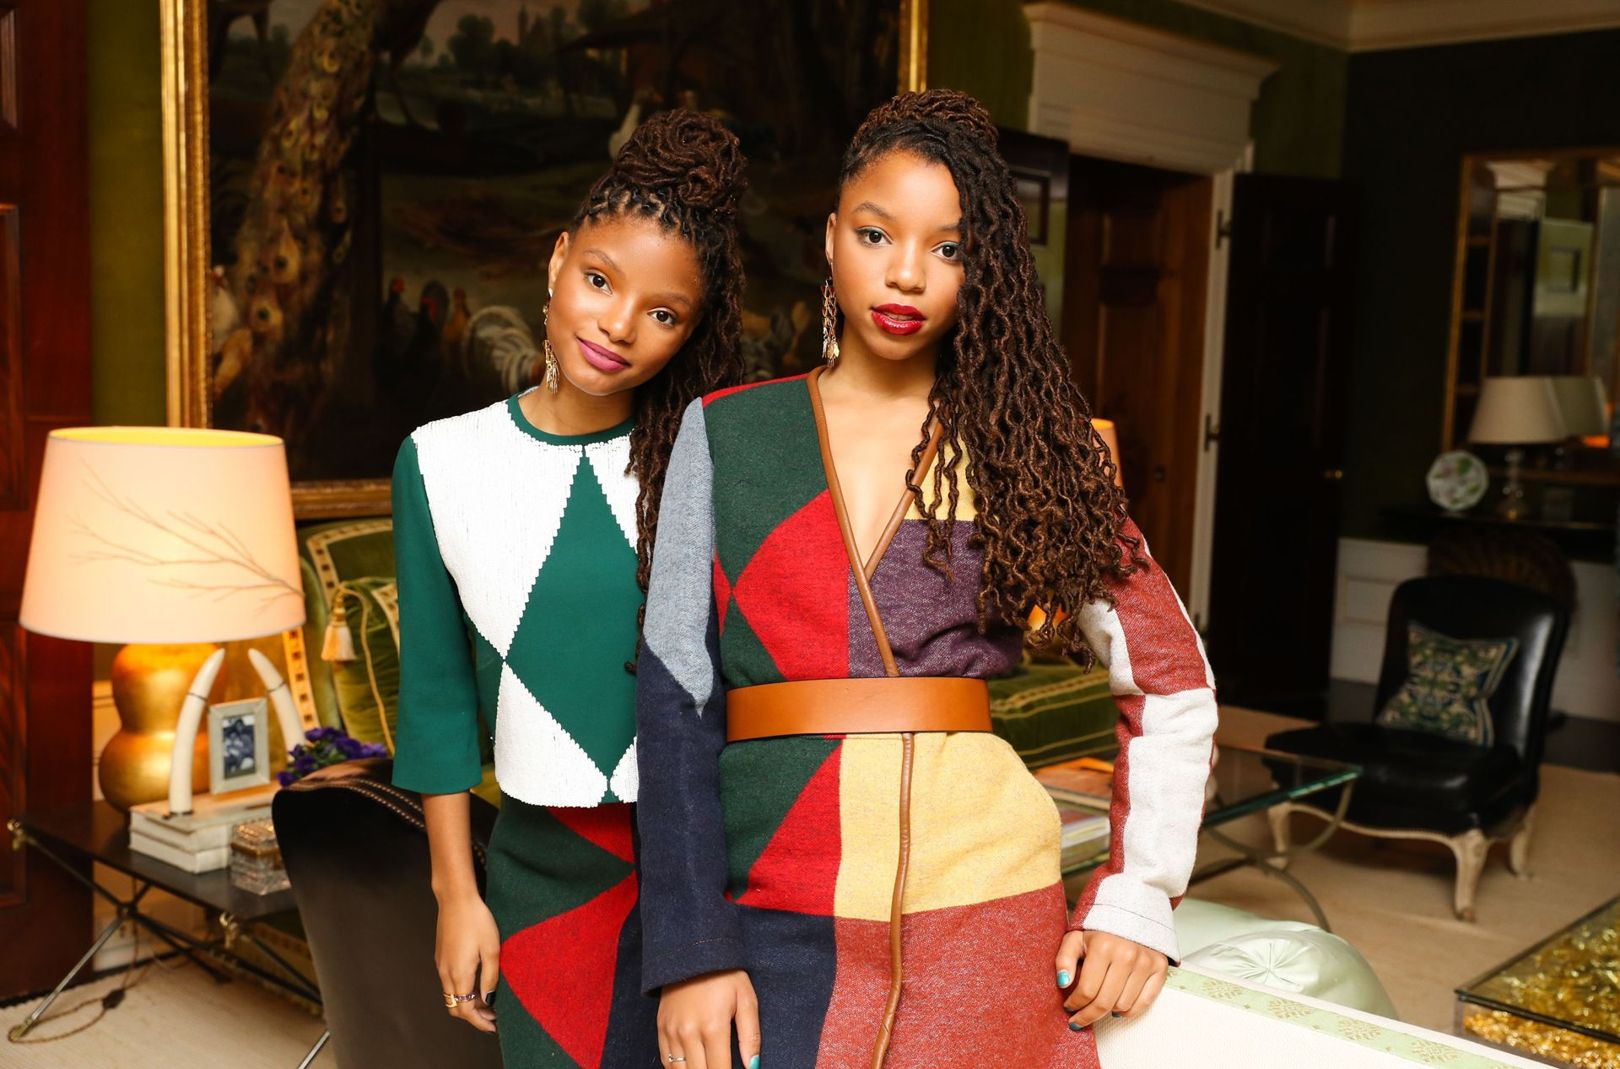 Chloe & Halle at the Tory Burch dinner.